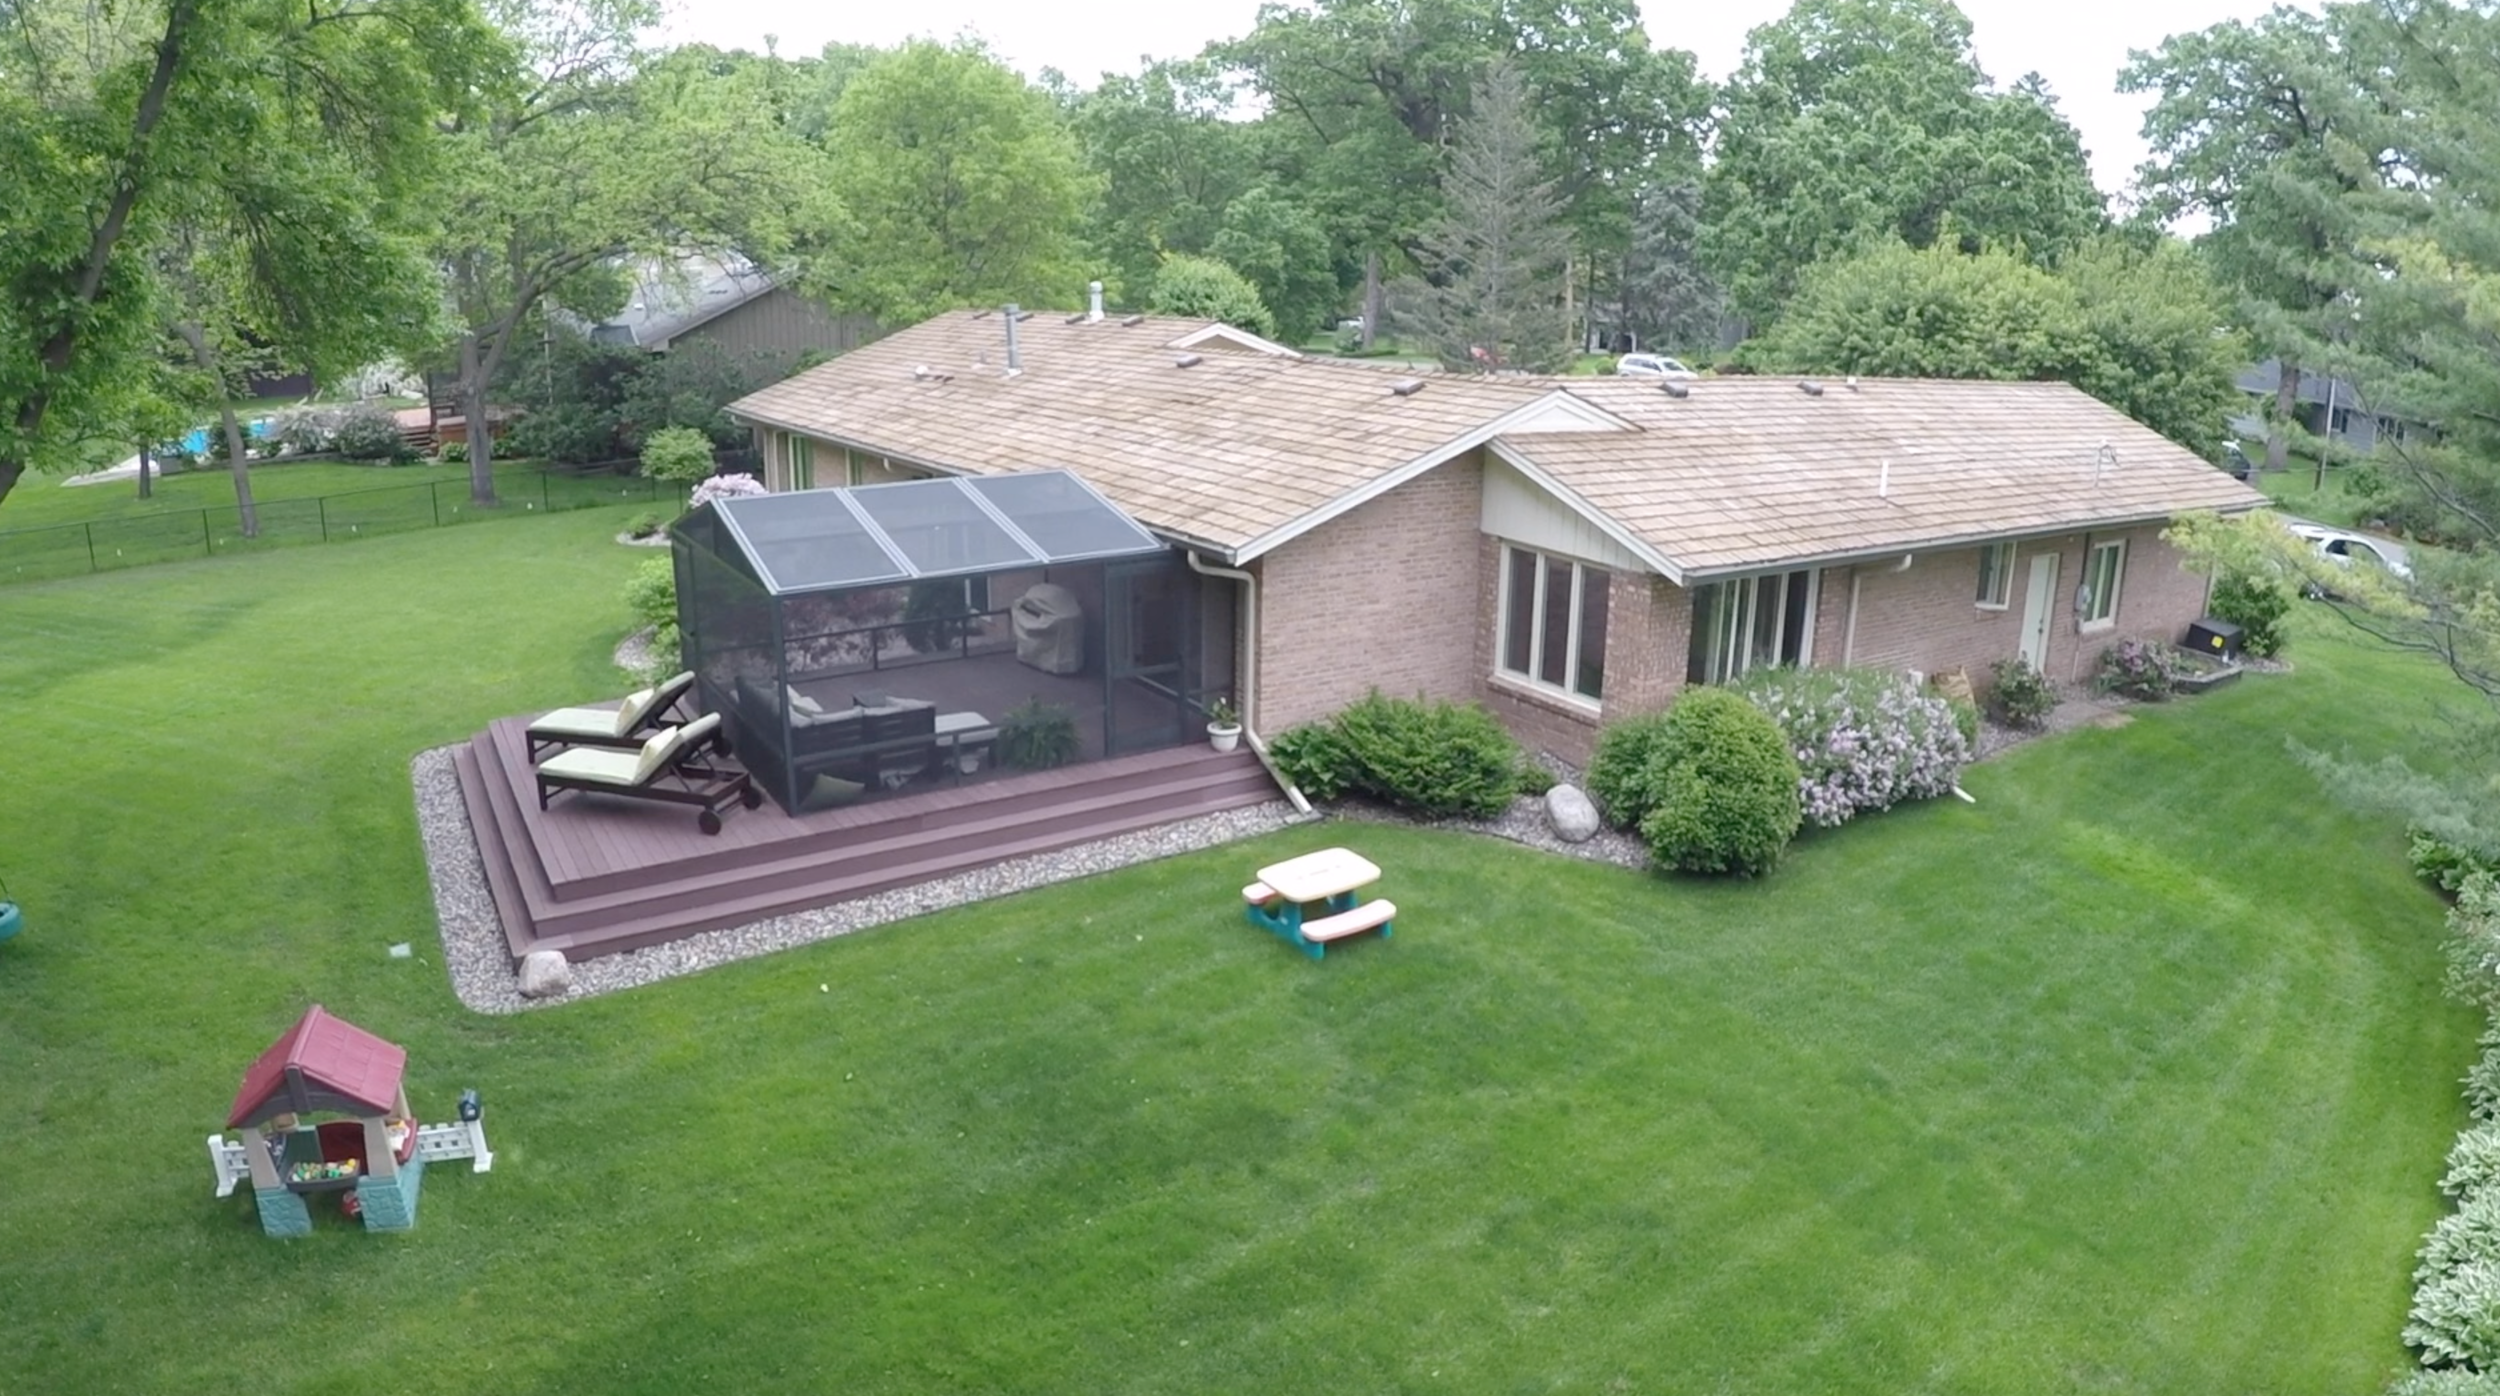 Real Estate - Aerial drone video with MLS (non-branded) & branded 1 to 3 minute videos.$275 flat fee (includes all on-site filming & editing)